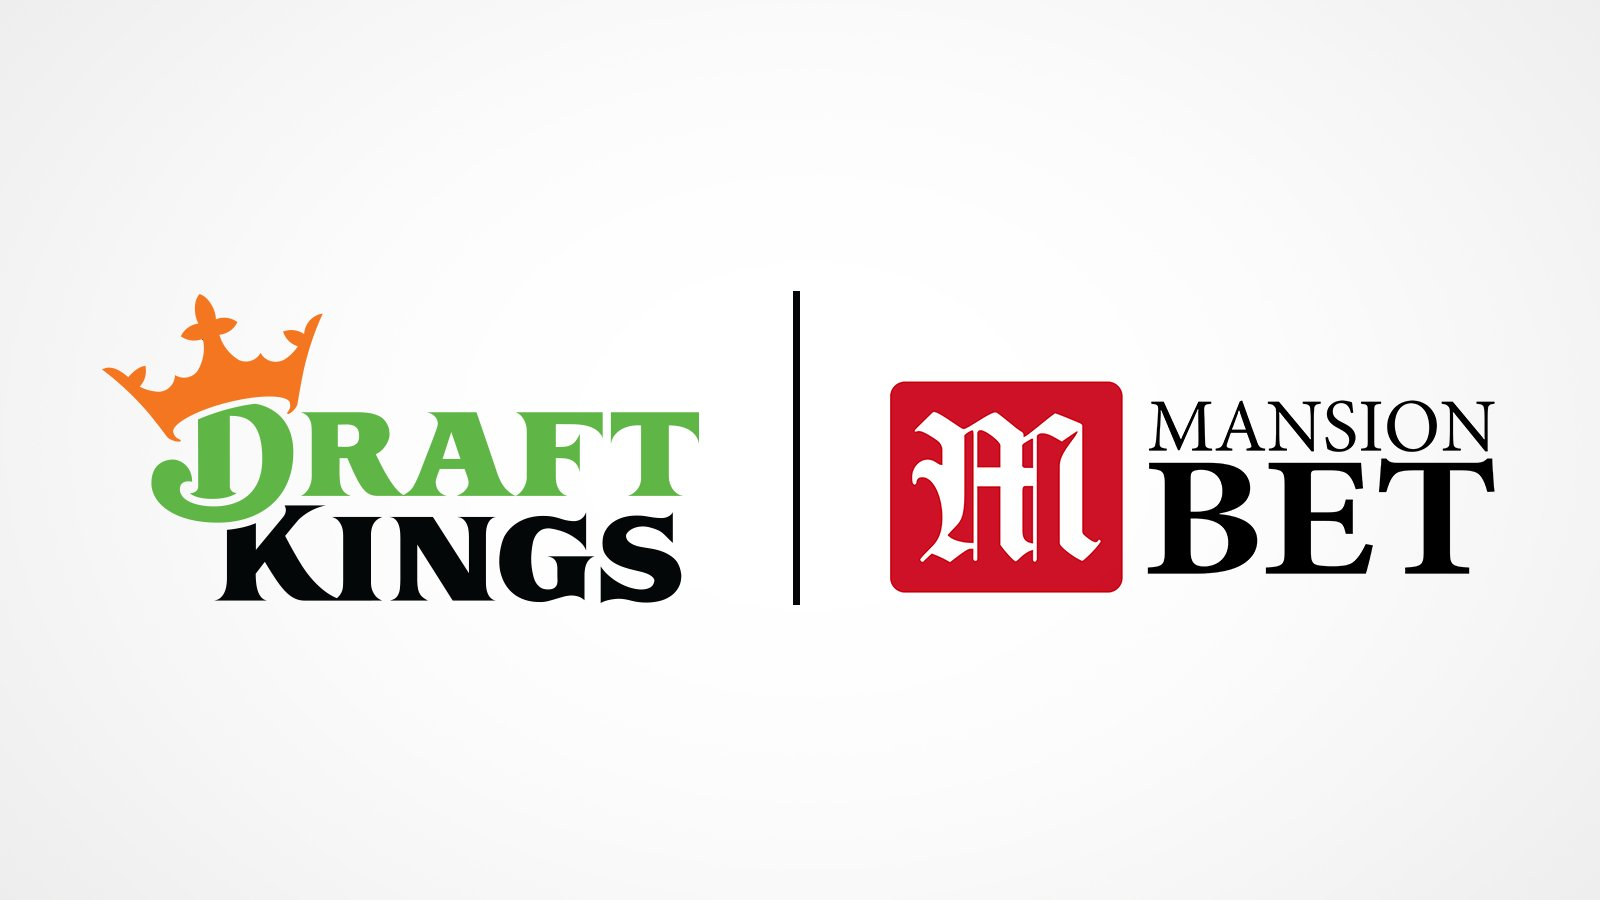 DraftKings Announce Major MansionBet Collab Extension